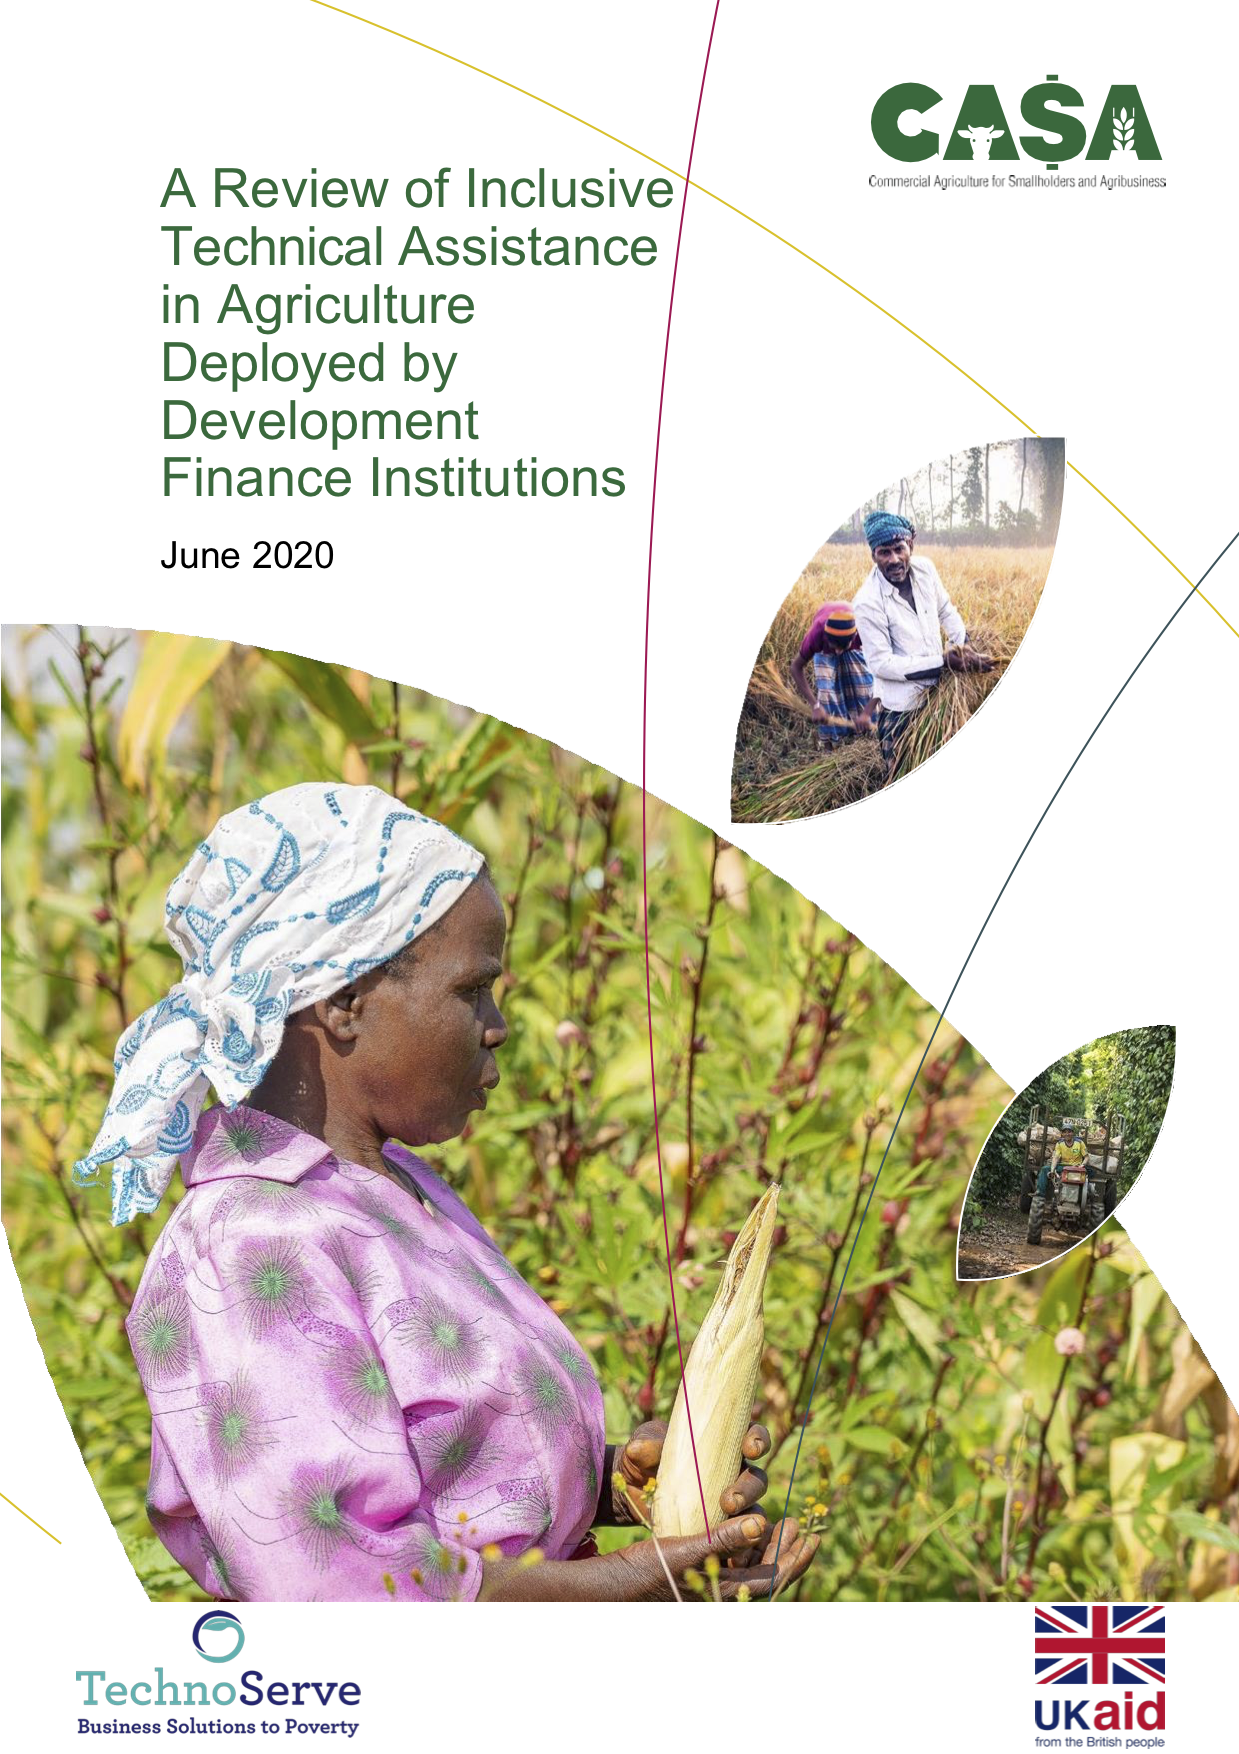 A Review of Inclusive Technical Assistance in Agriculture Deployed by Development Finance Institutions